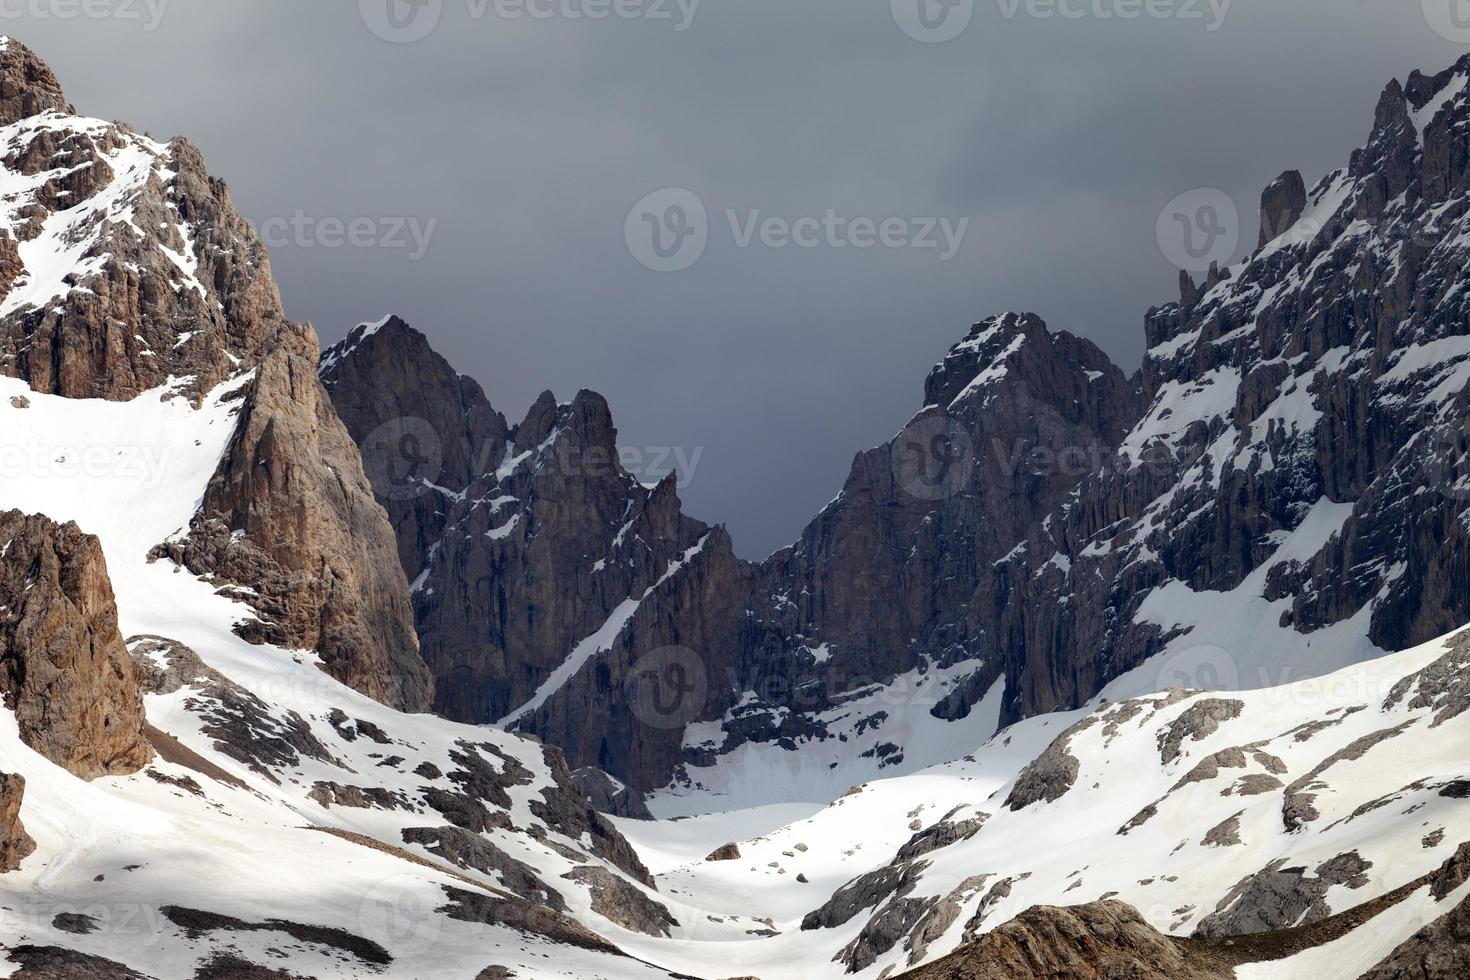 Snowy mountains and storm clouds photo